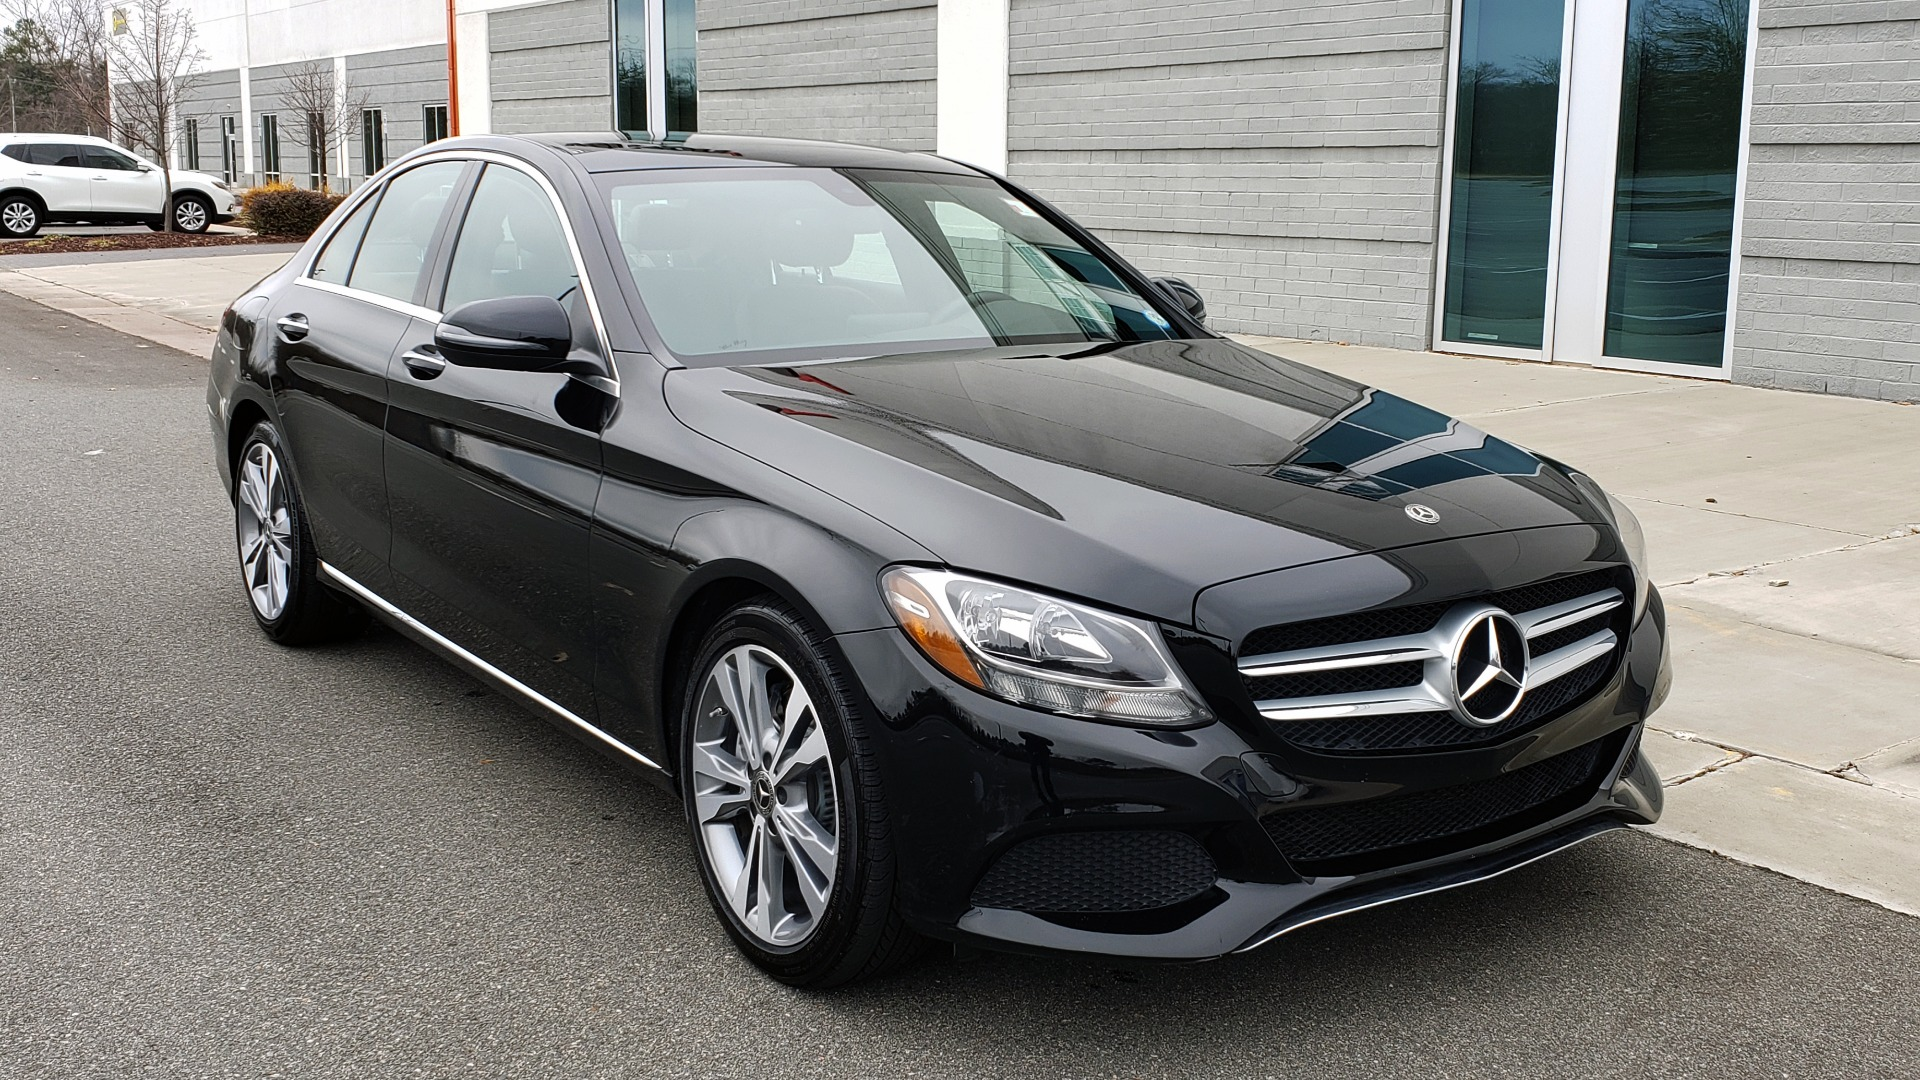 Used 2018 Mercedes-Benz C-CLASS C 300 PREMIUM / 2.0L TURBO / PANO-ROOF / KEYLESS-GO / REARVIEW for sale Sold at Formula Imports in Charlotte NC 28227 4